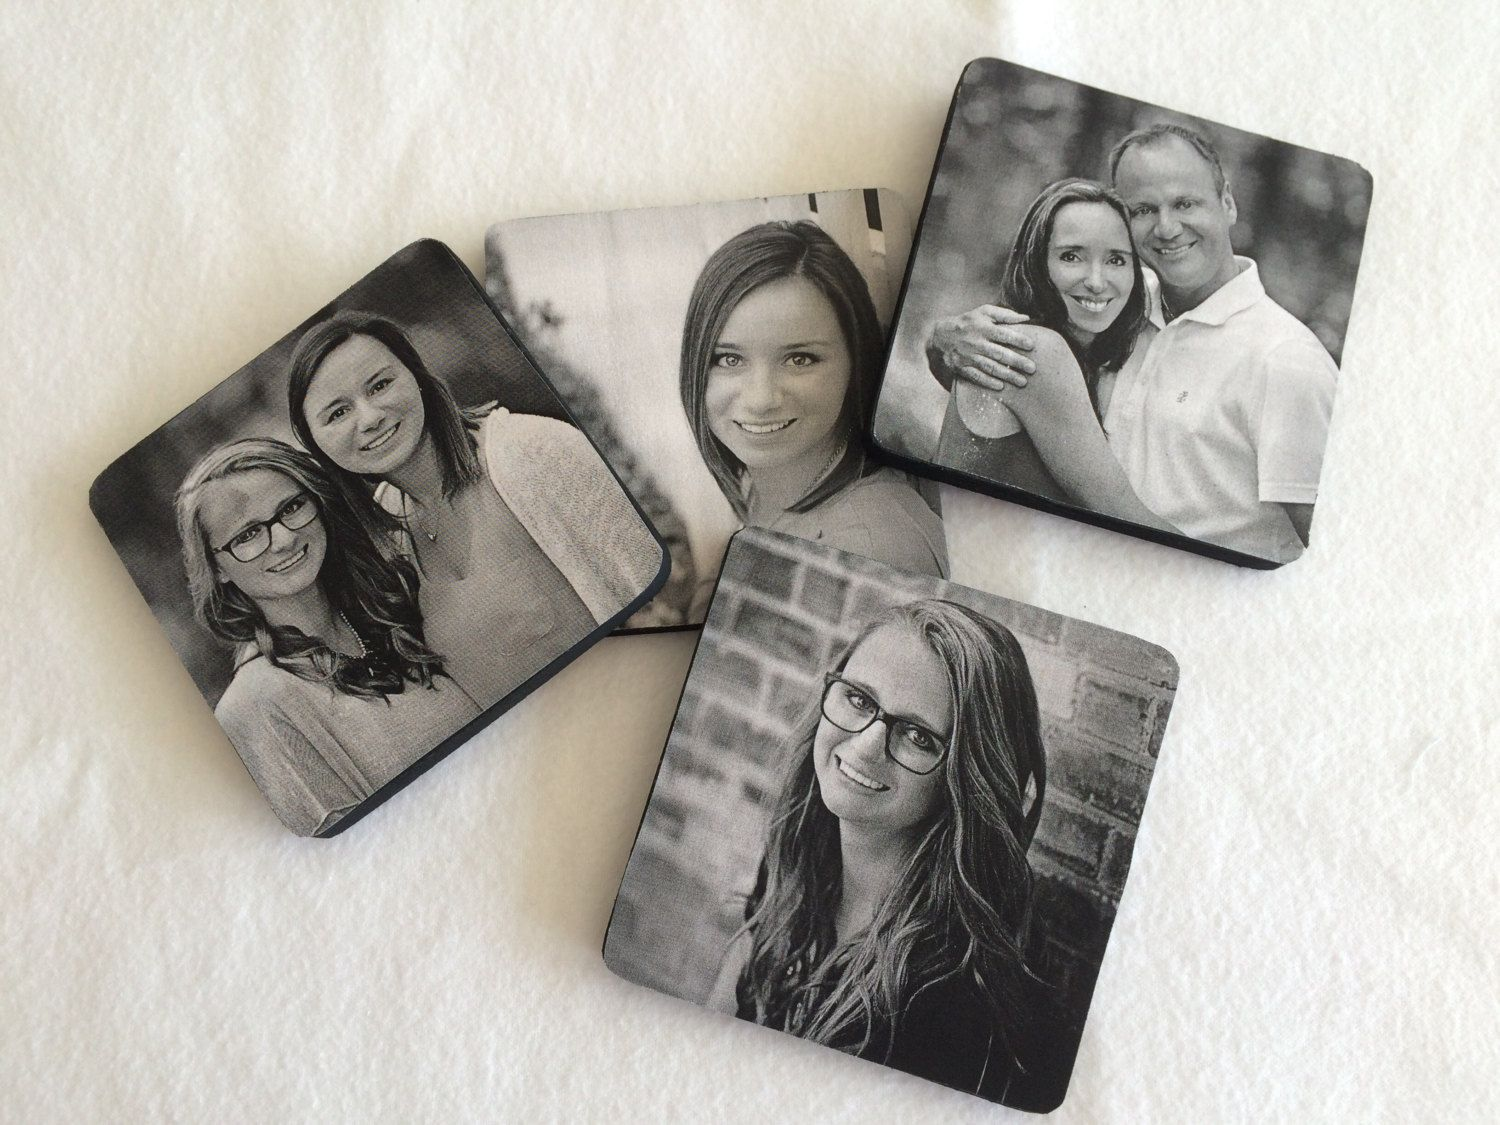 Personalized Drink Coasters by YouGetThePictureShop on Etsy